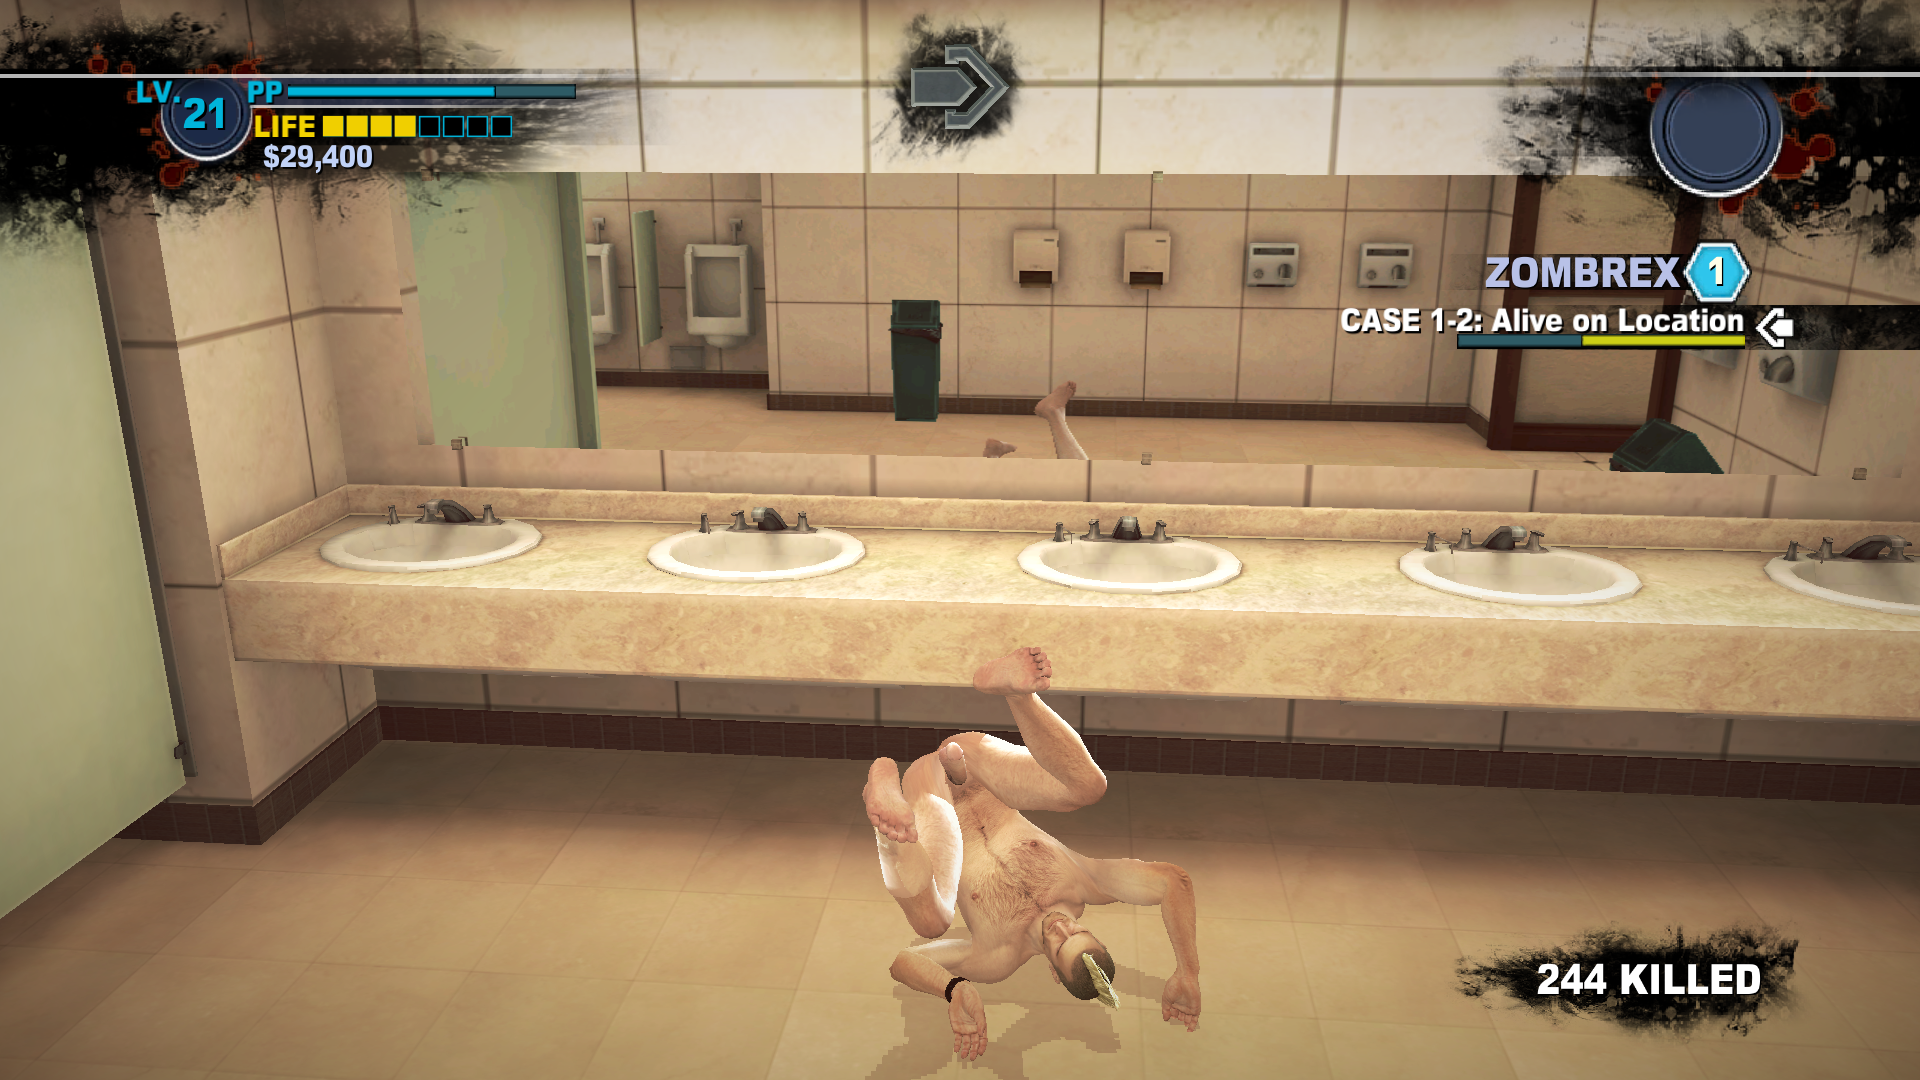 Dead rising 2 sex mod naked galleries